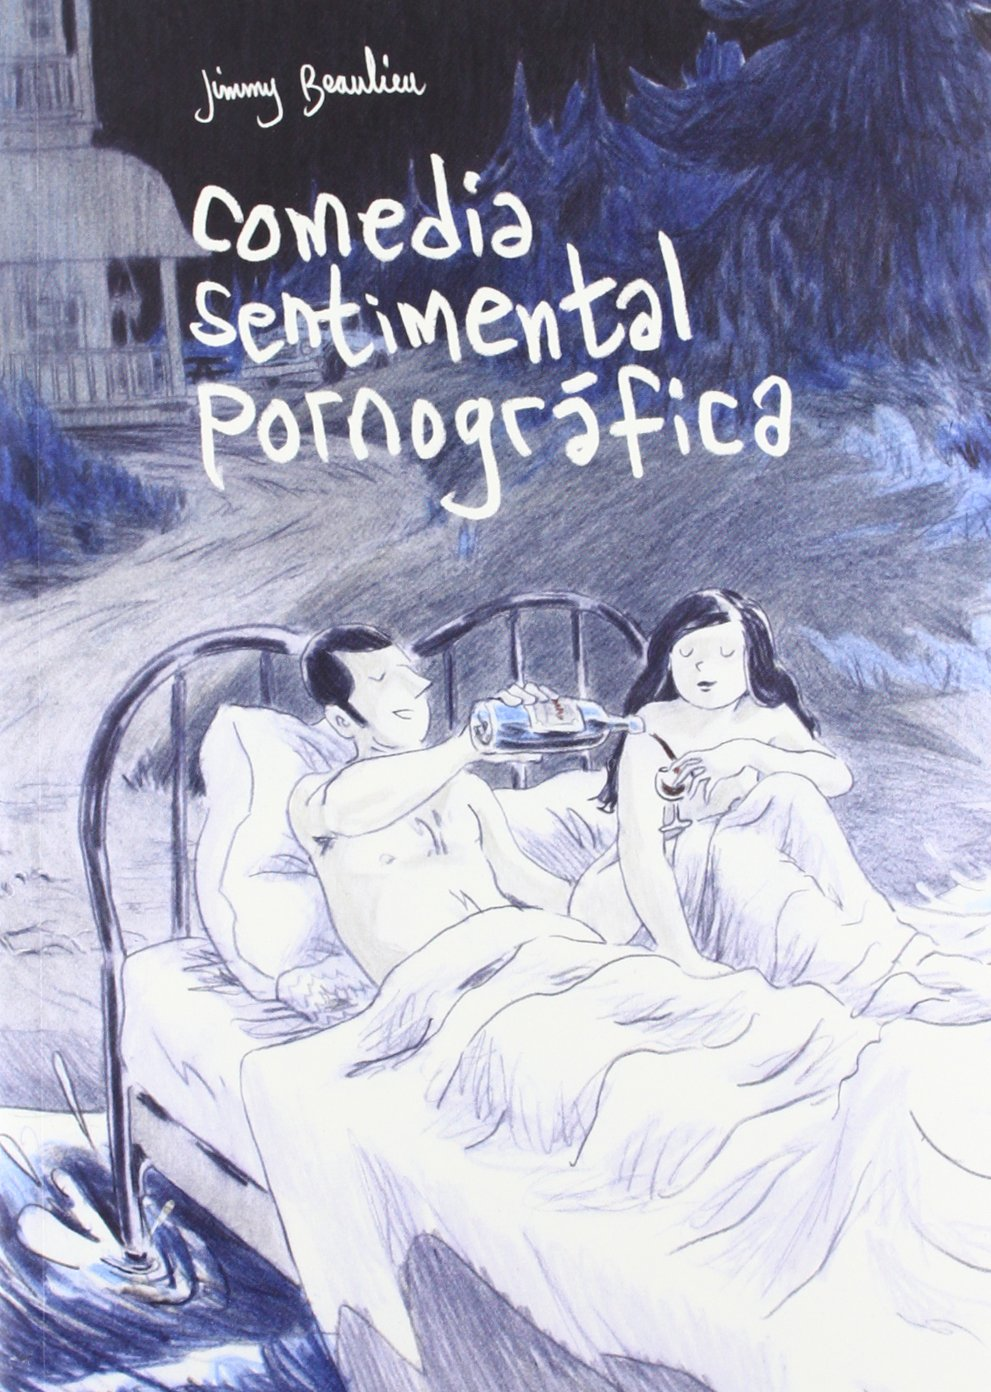 Comedia sentimental pornográfica: Amazon.es: Jimmy Beaulieu, Julia Osuna Aguilar: Libros